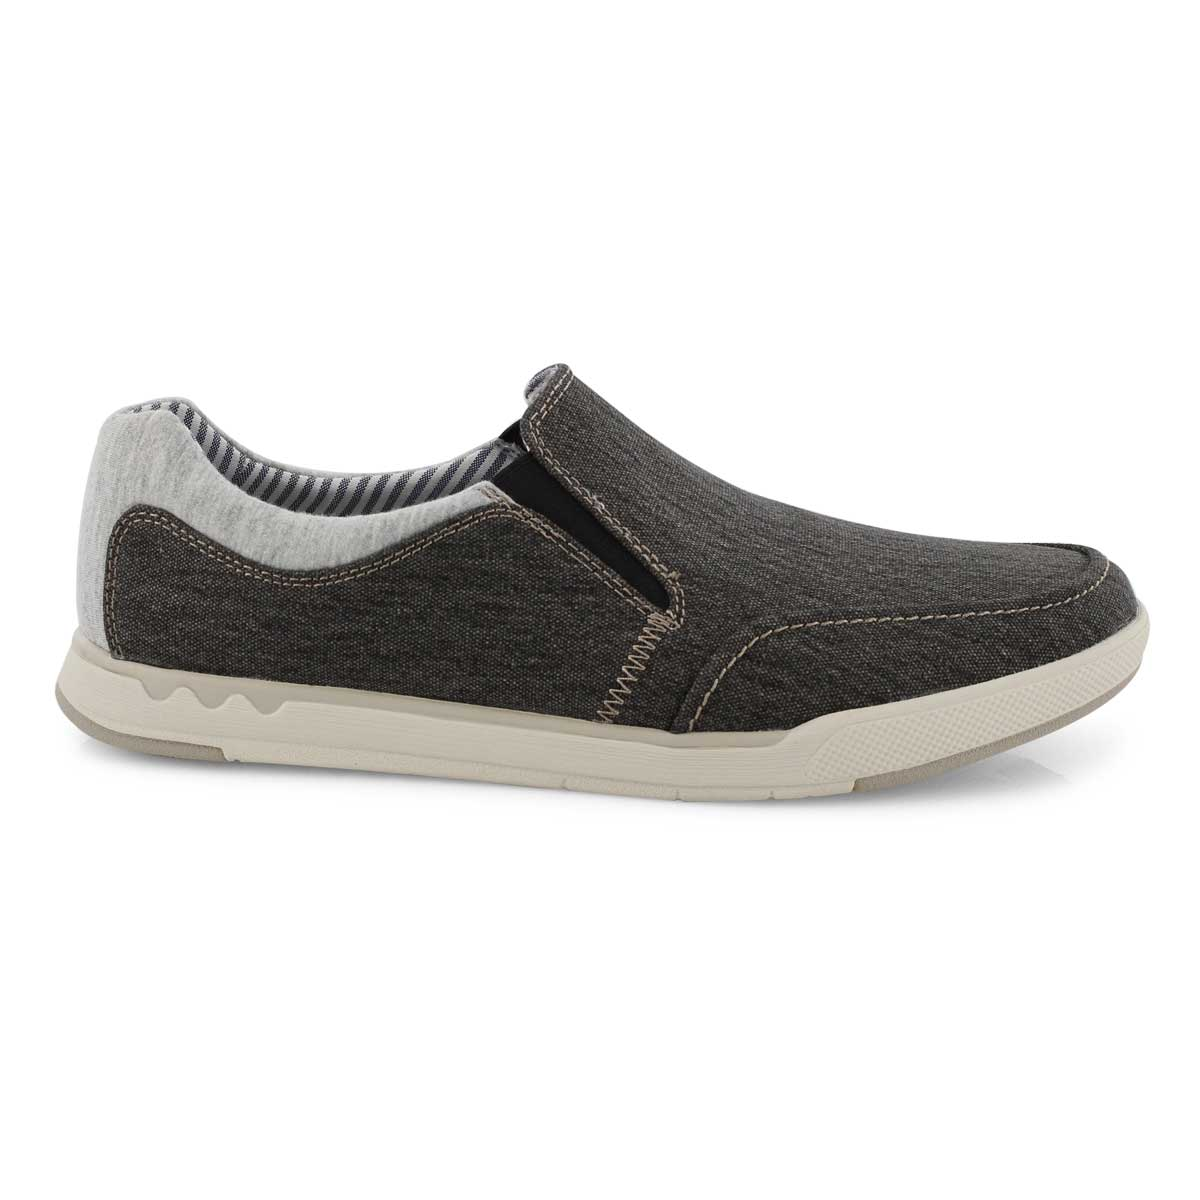 Mns Step Isle Slip blk casual shoe